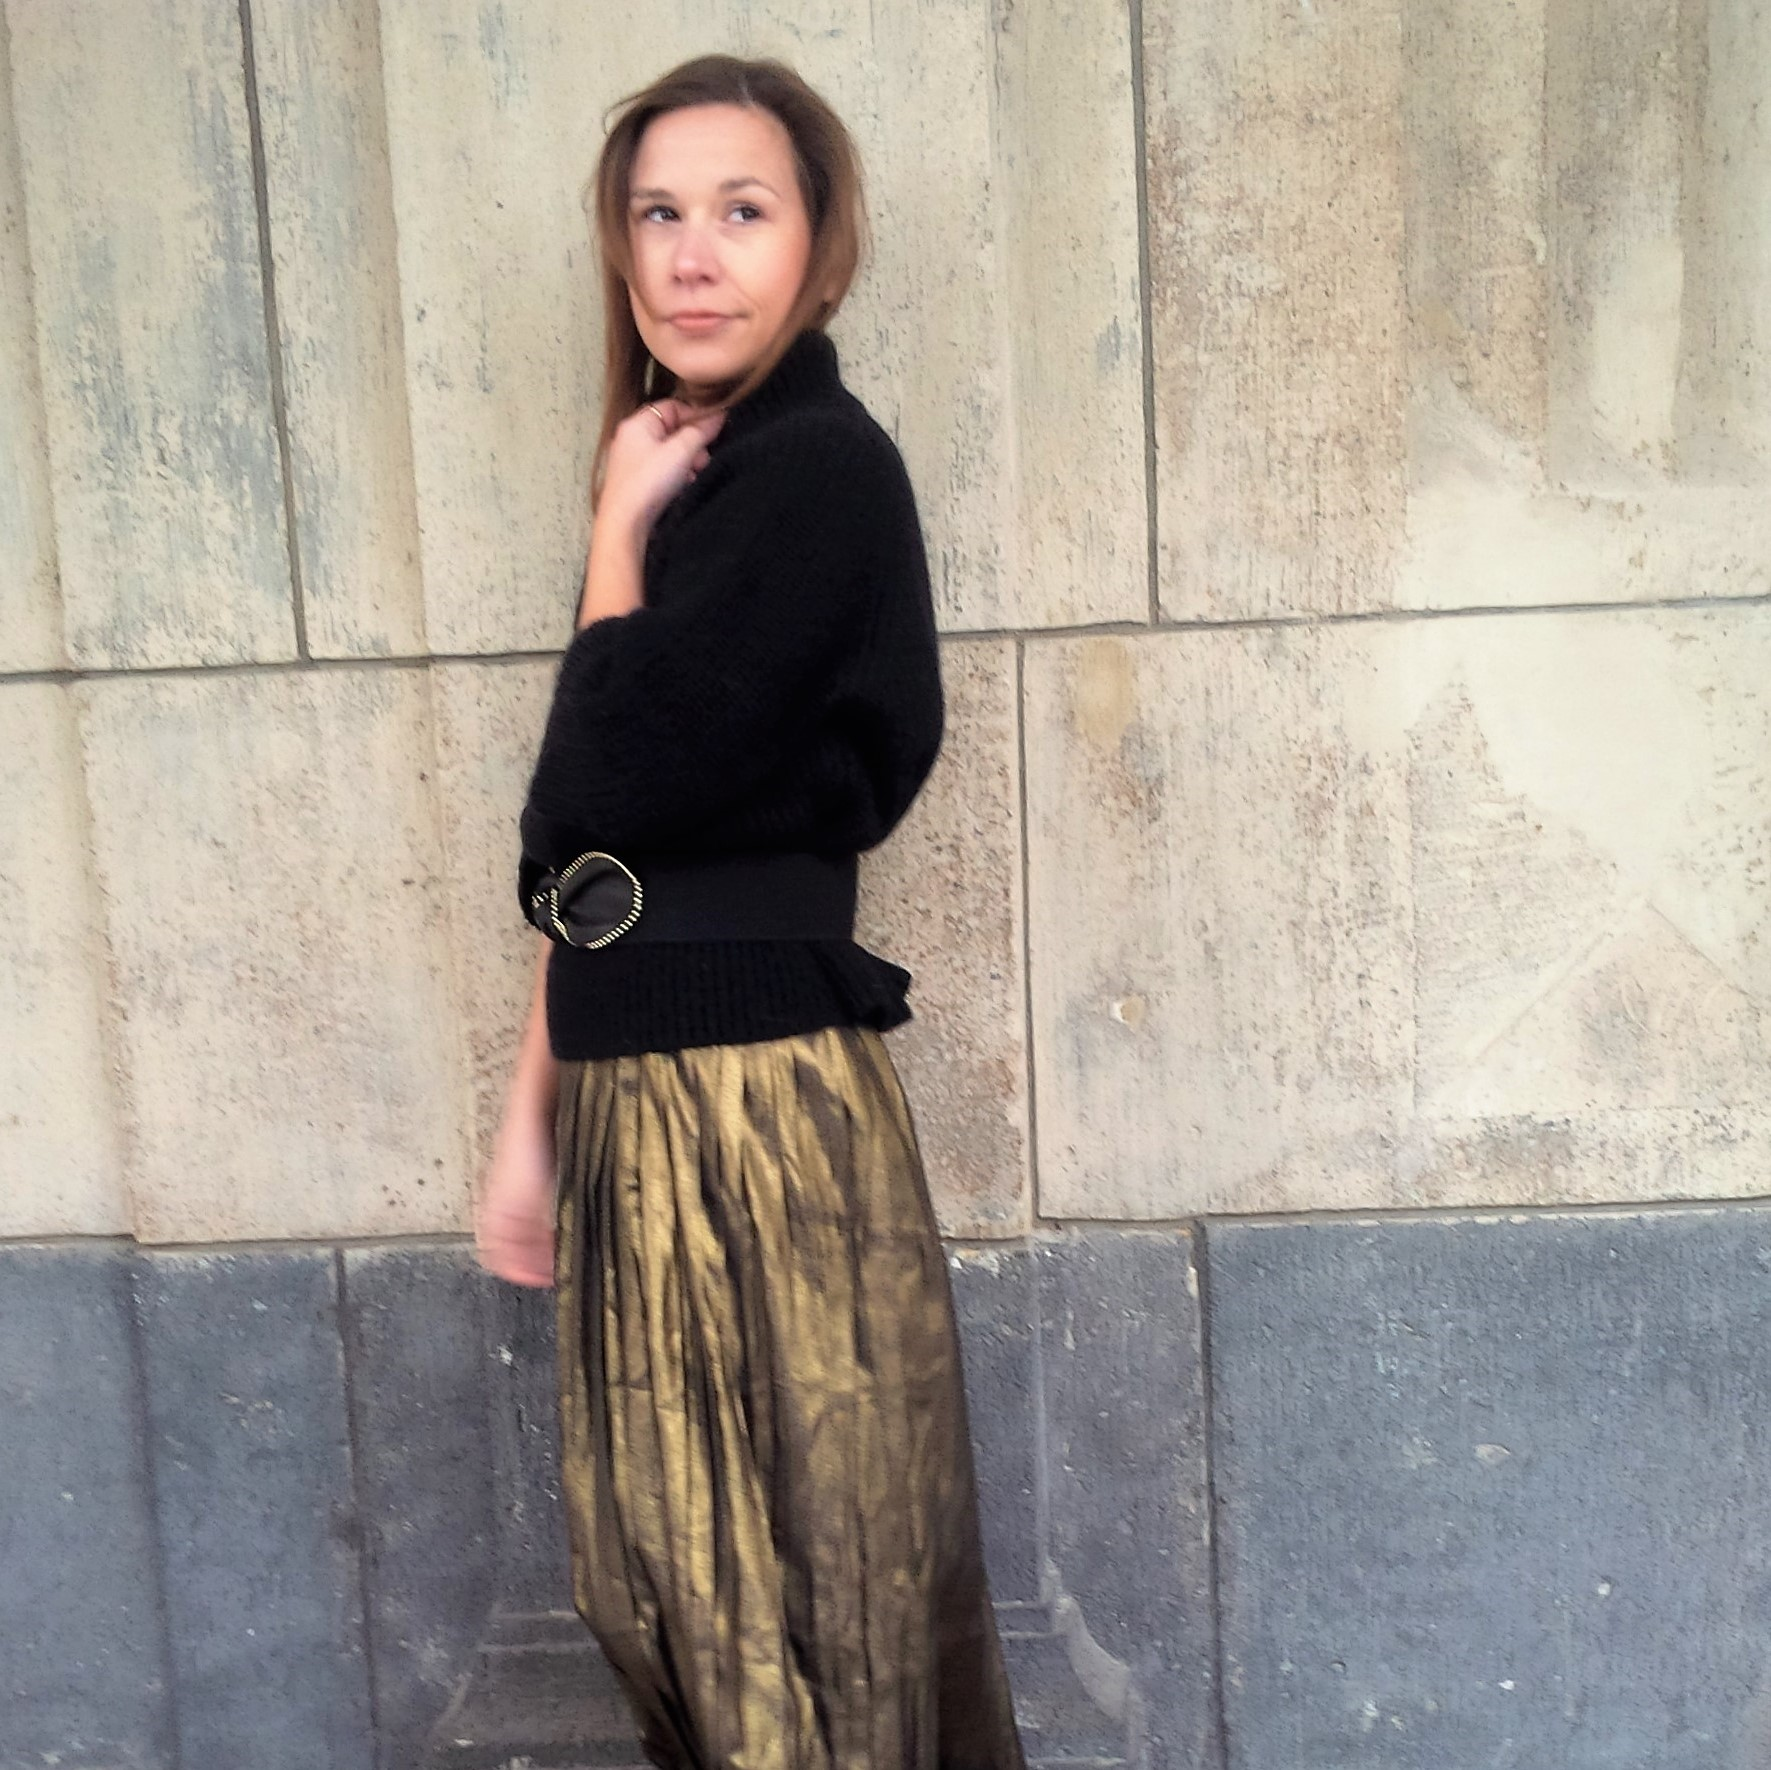 all-that-glitters-the-versatility-of-wearing-a-metallic-pleated-skirt-liebe-was-ist-fashion-advice-trend-lookbook-kopie